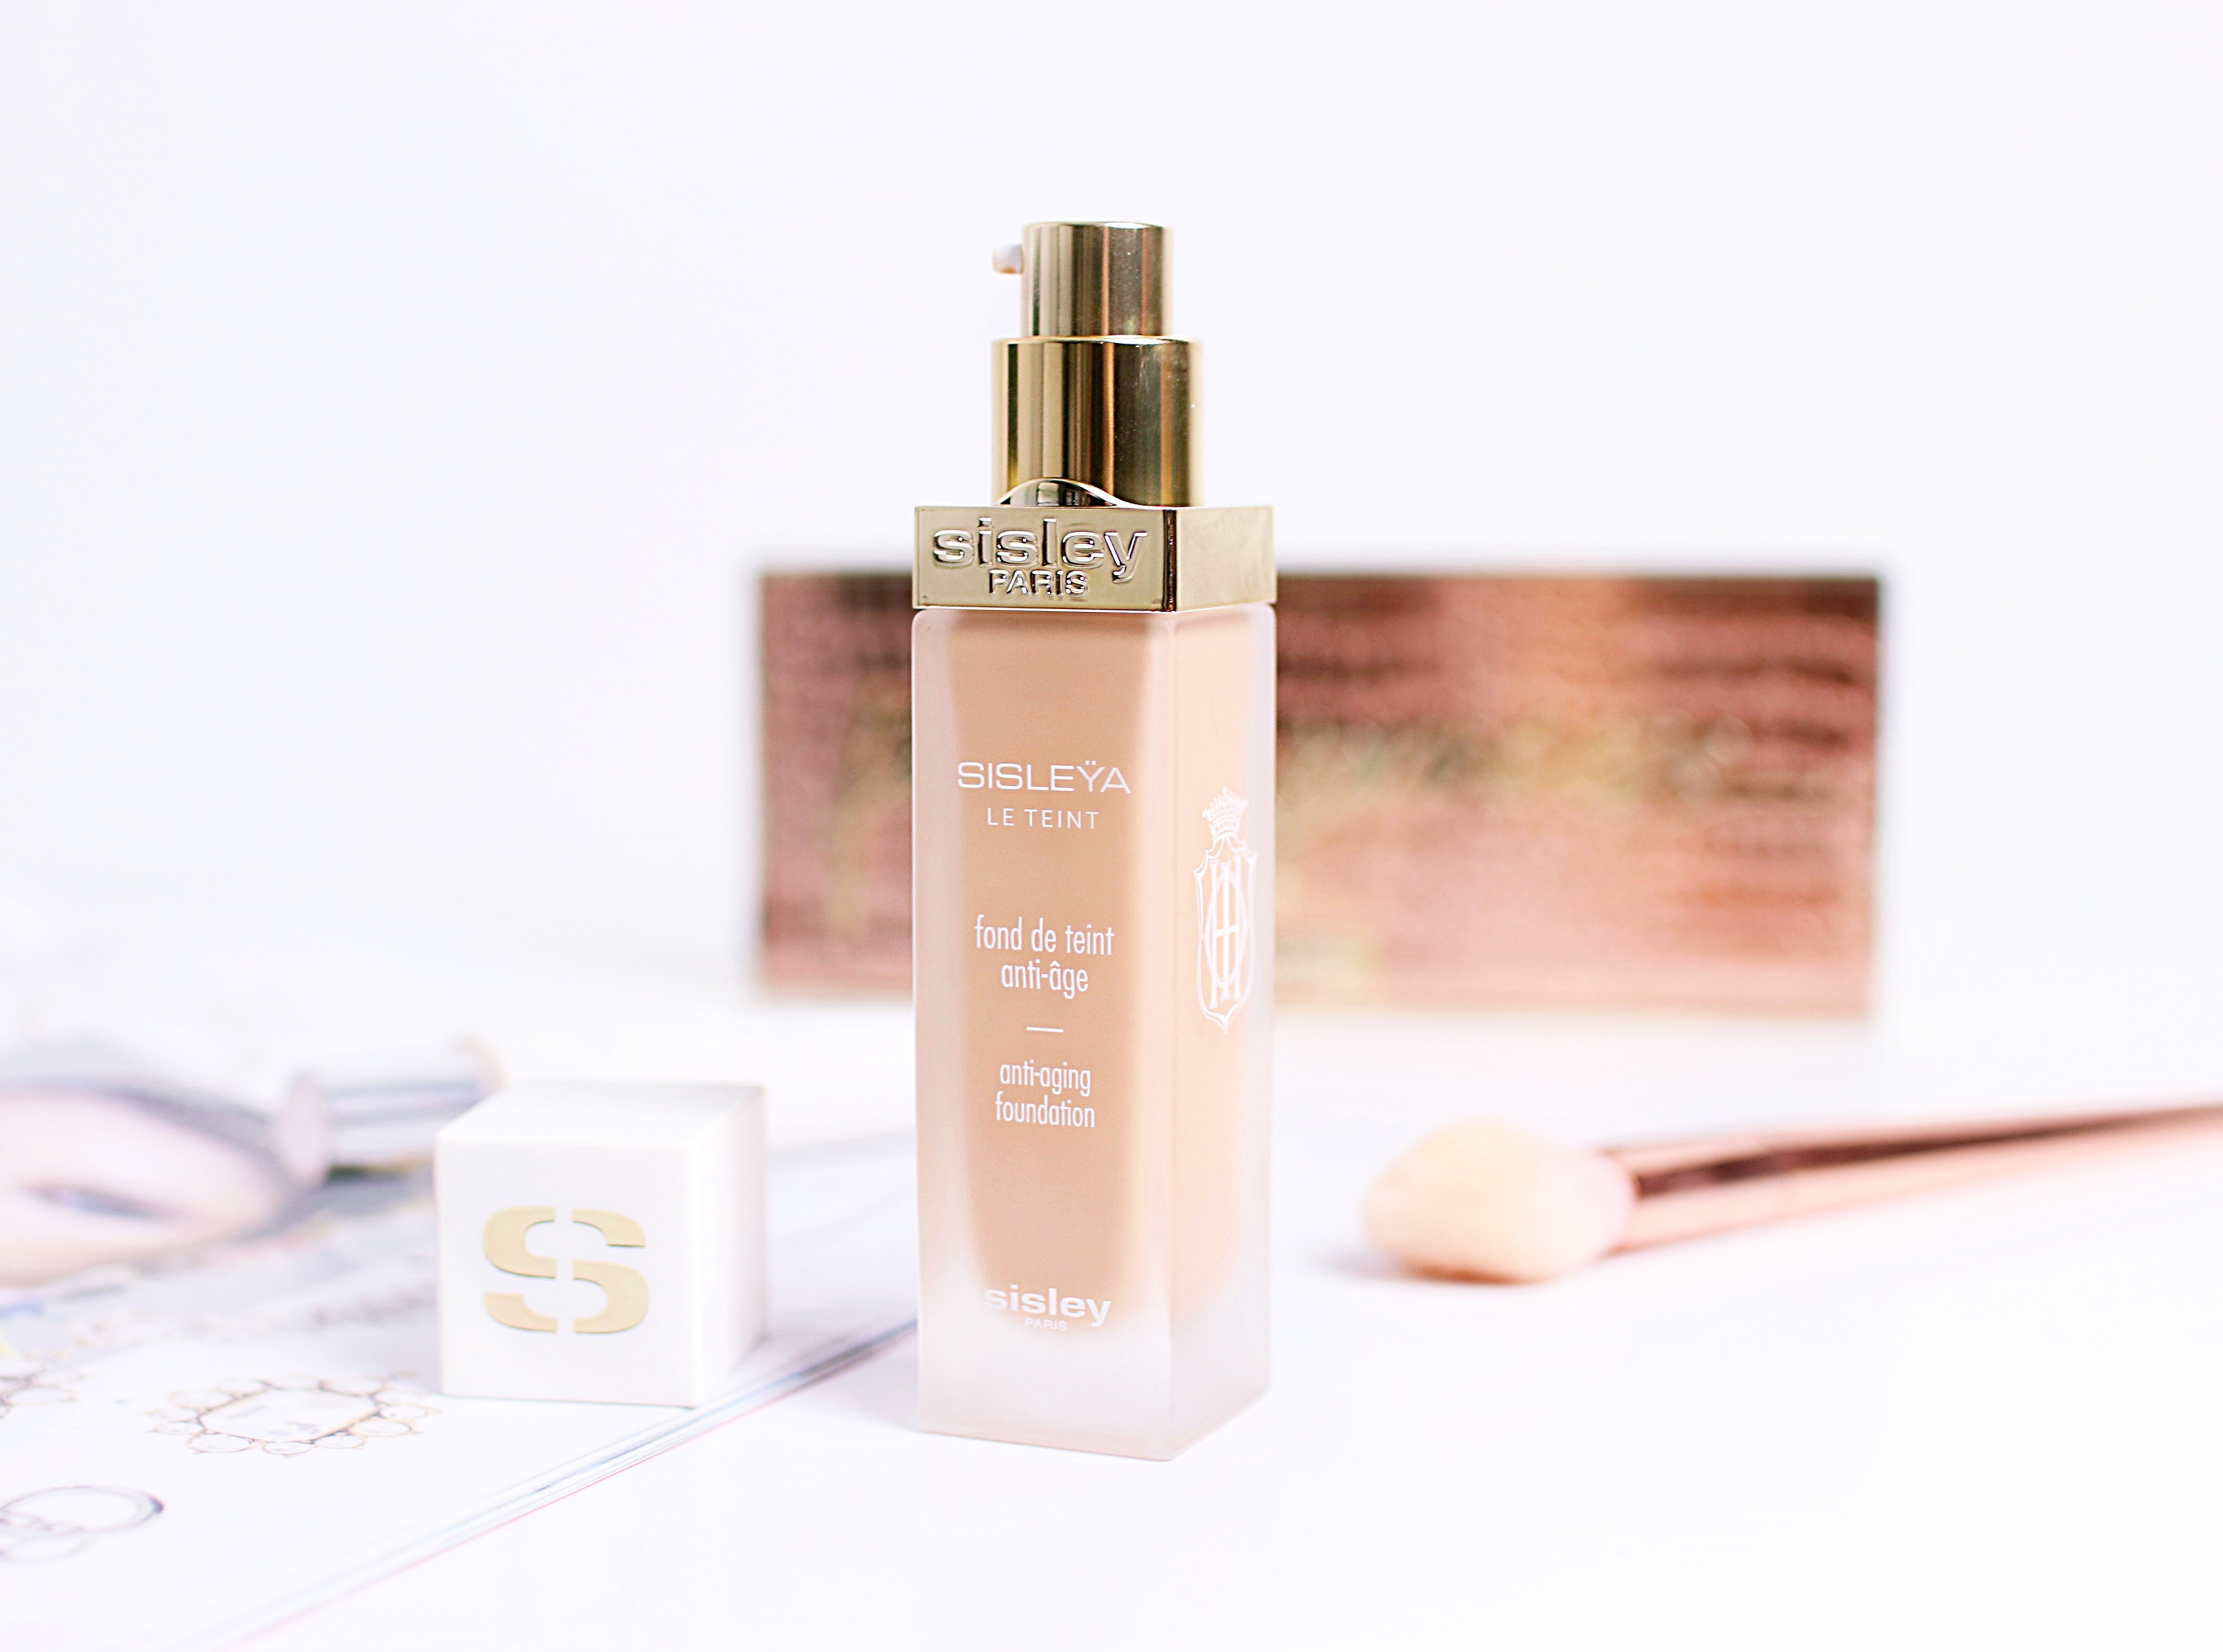 Sisleya le teint anti-ageing foundation review